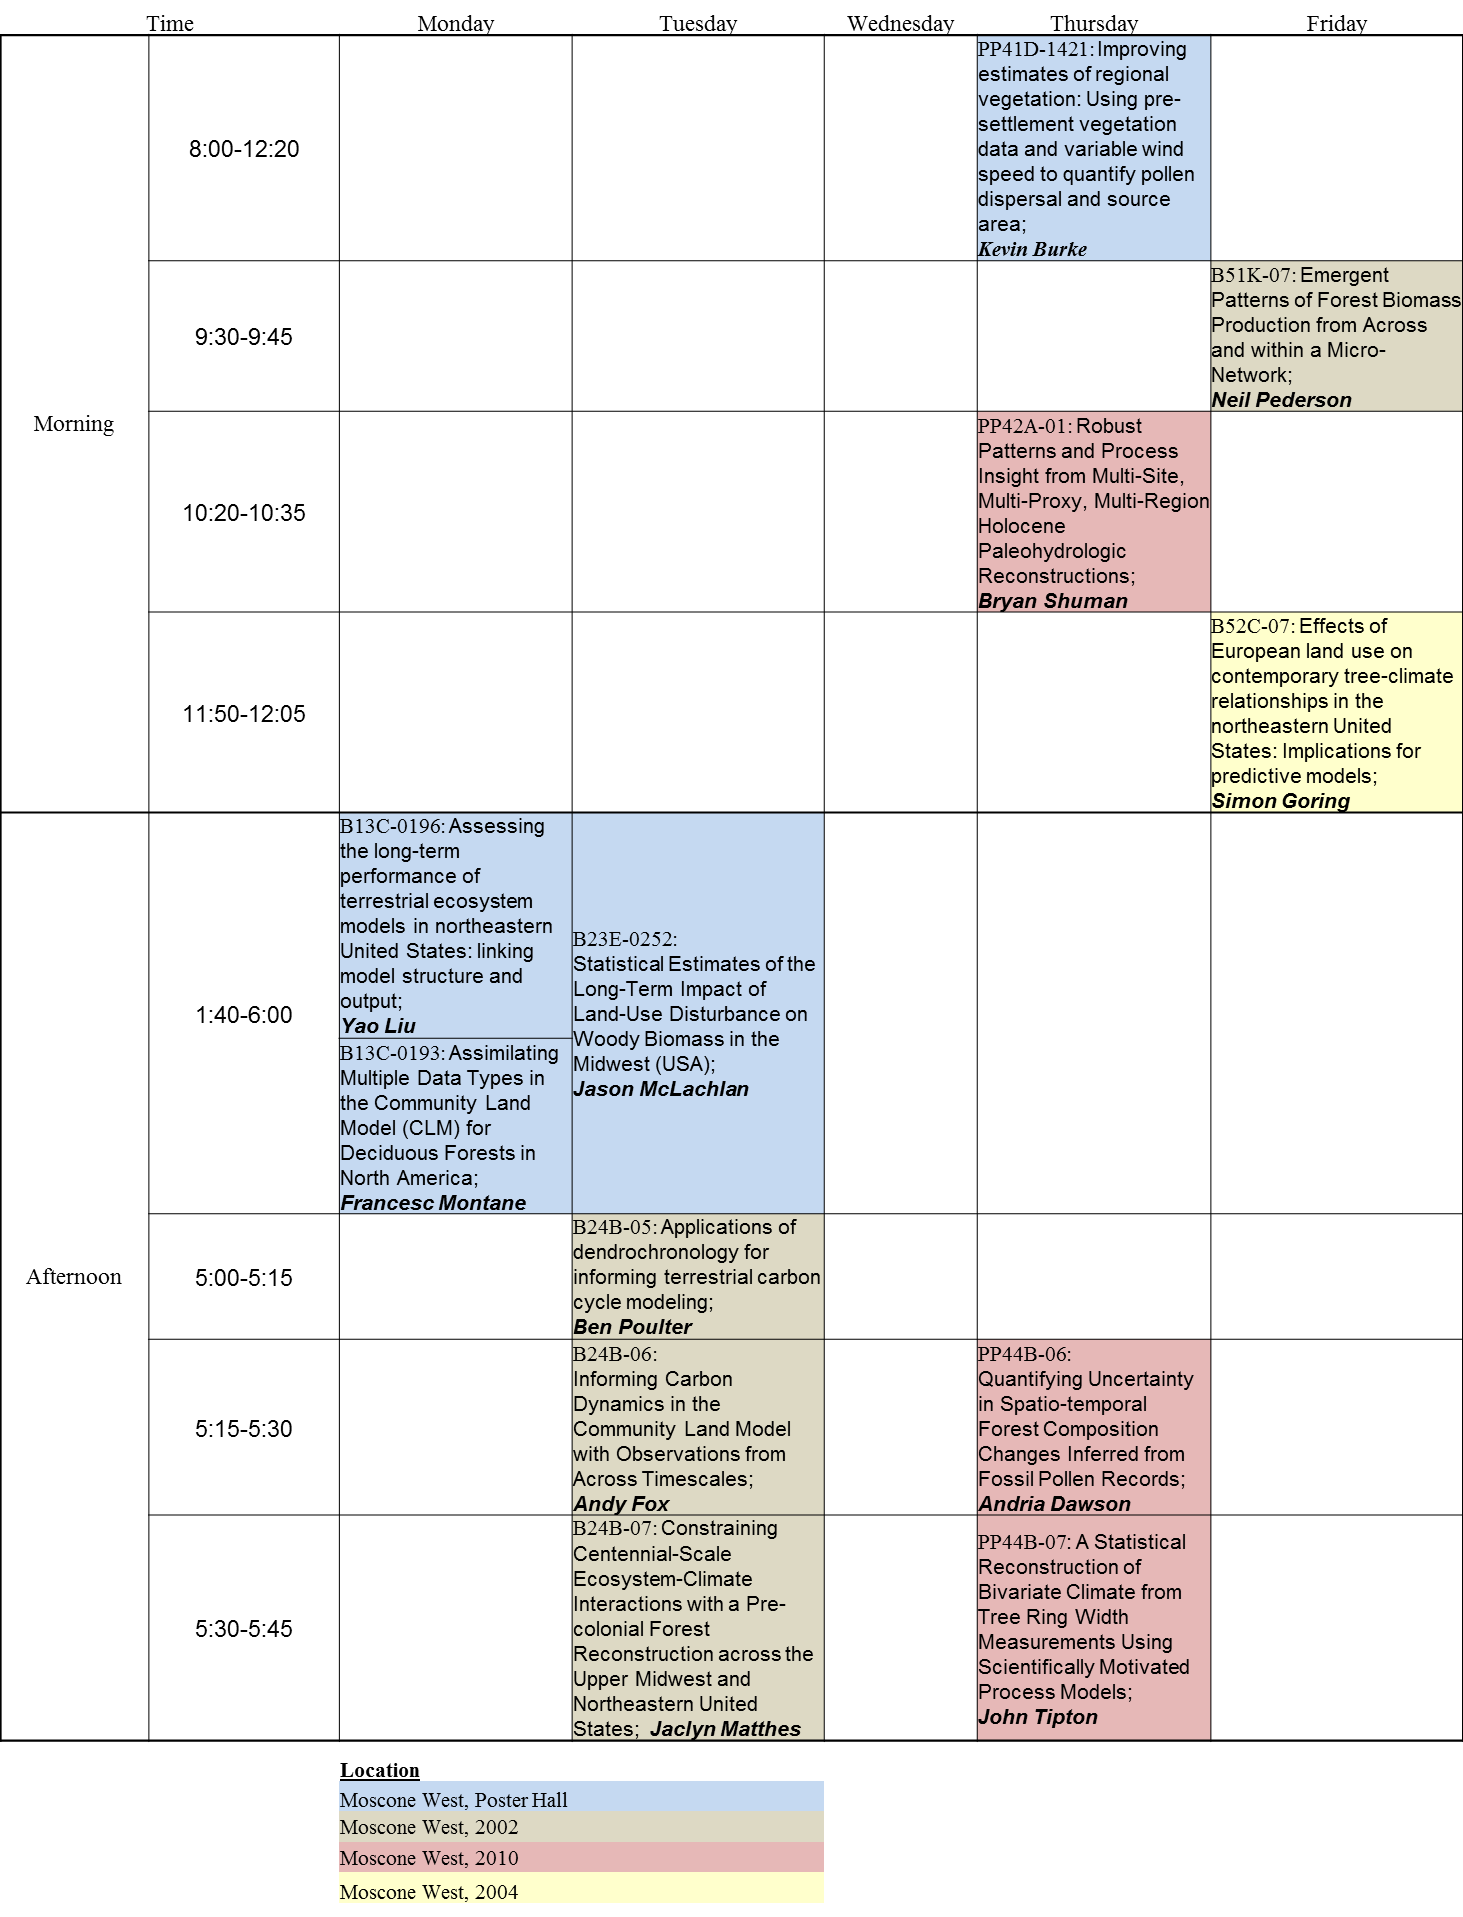 PalEON presentation & poster schedule for AGU 2014. Presentations are color coded by location.